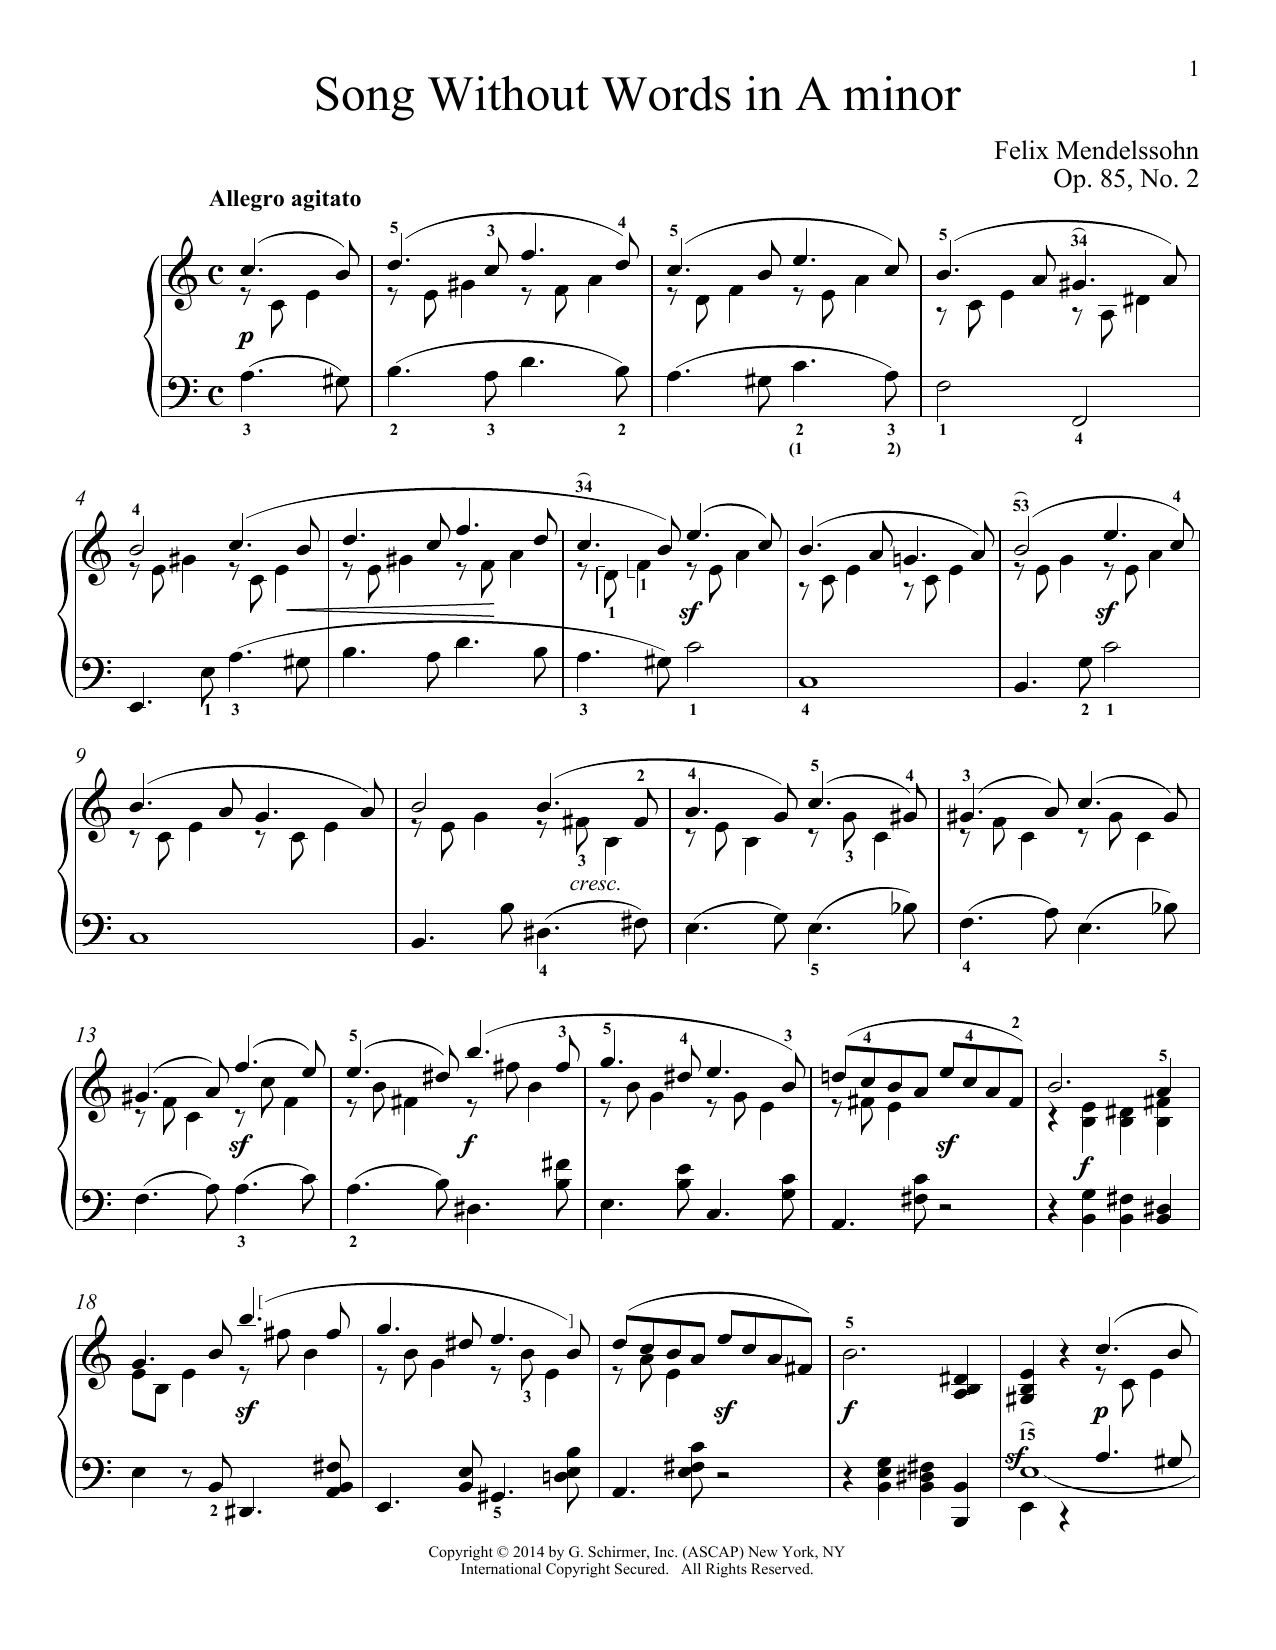 Immanuela Gruenberg Song Without Words In A Minor, Op. 85, No. 2 sheet music notes and chords. Download Printable PDF.